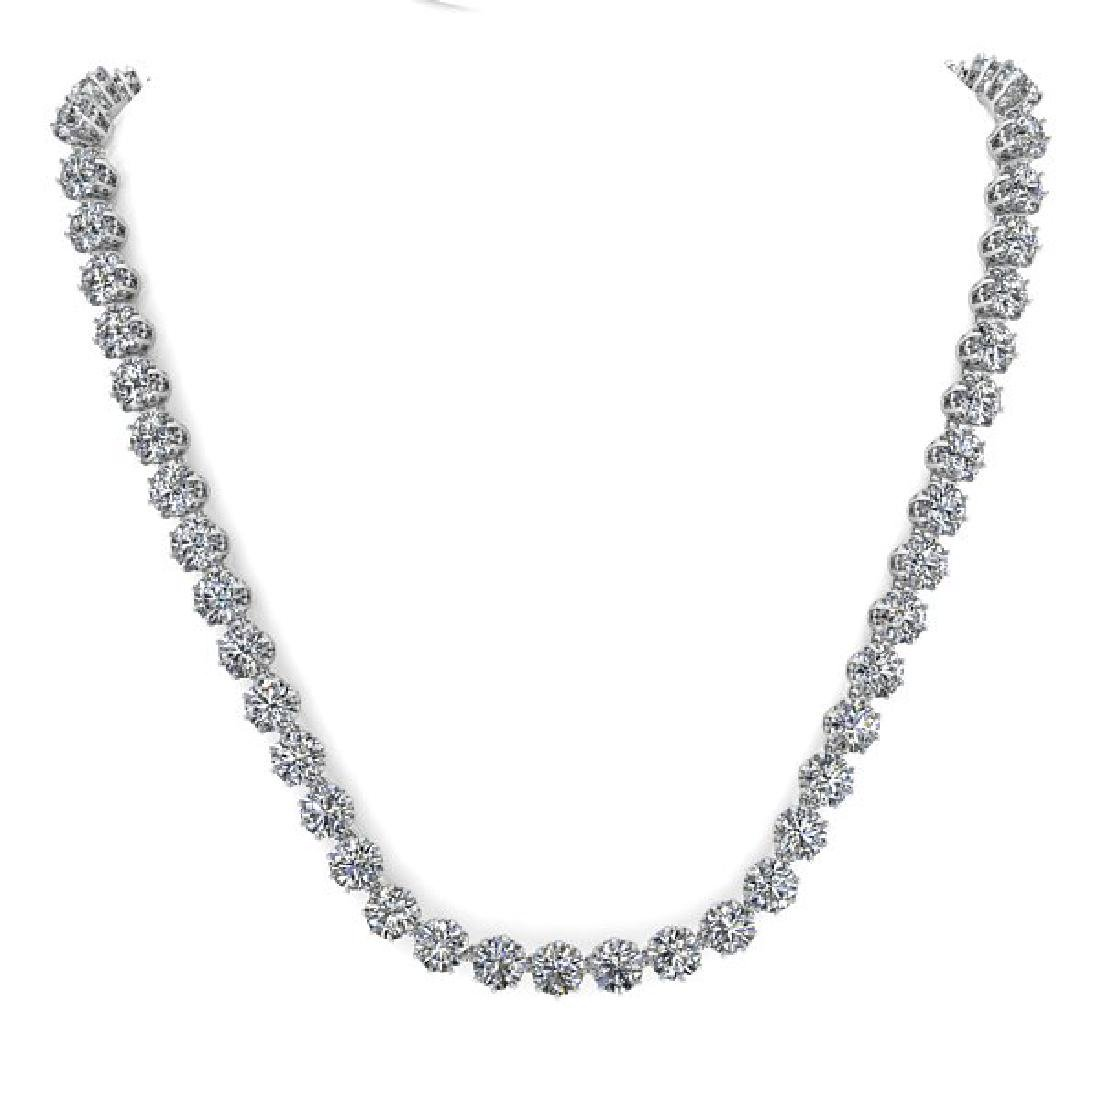 30 CTW SI Certified Diamond Necklace 18K White Gold - 3